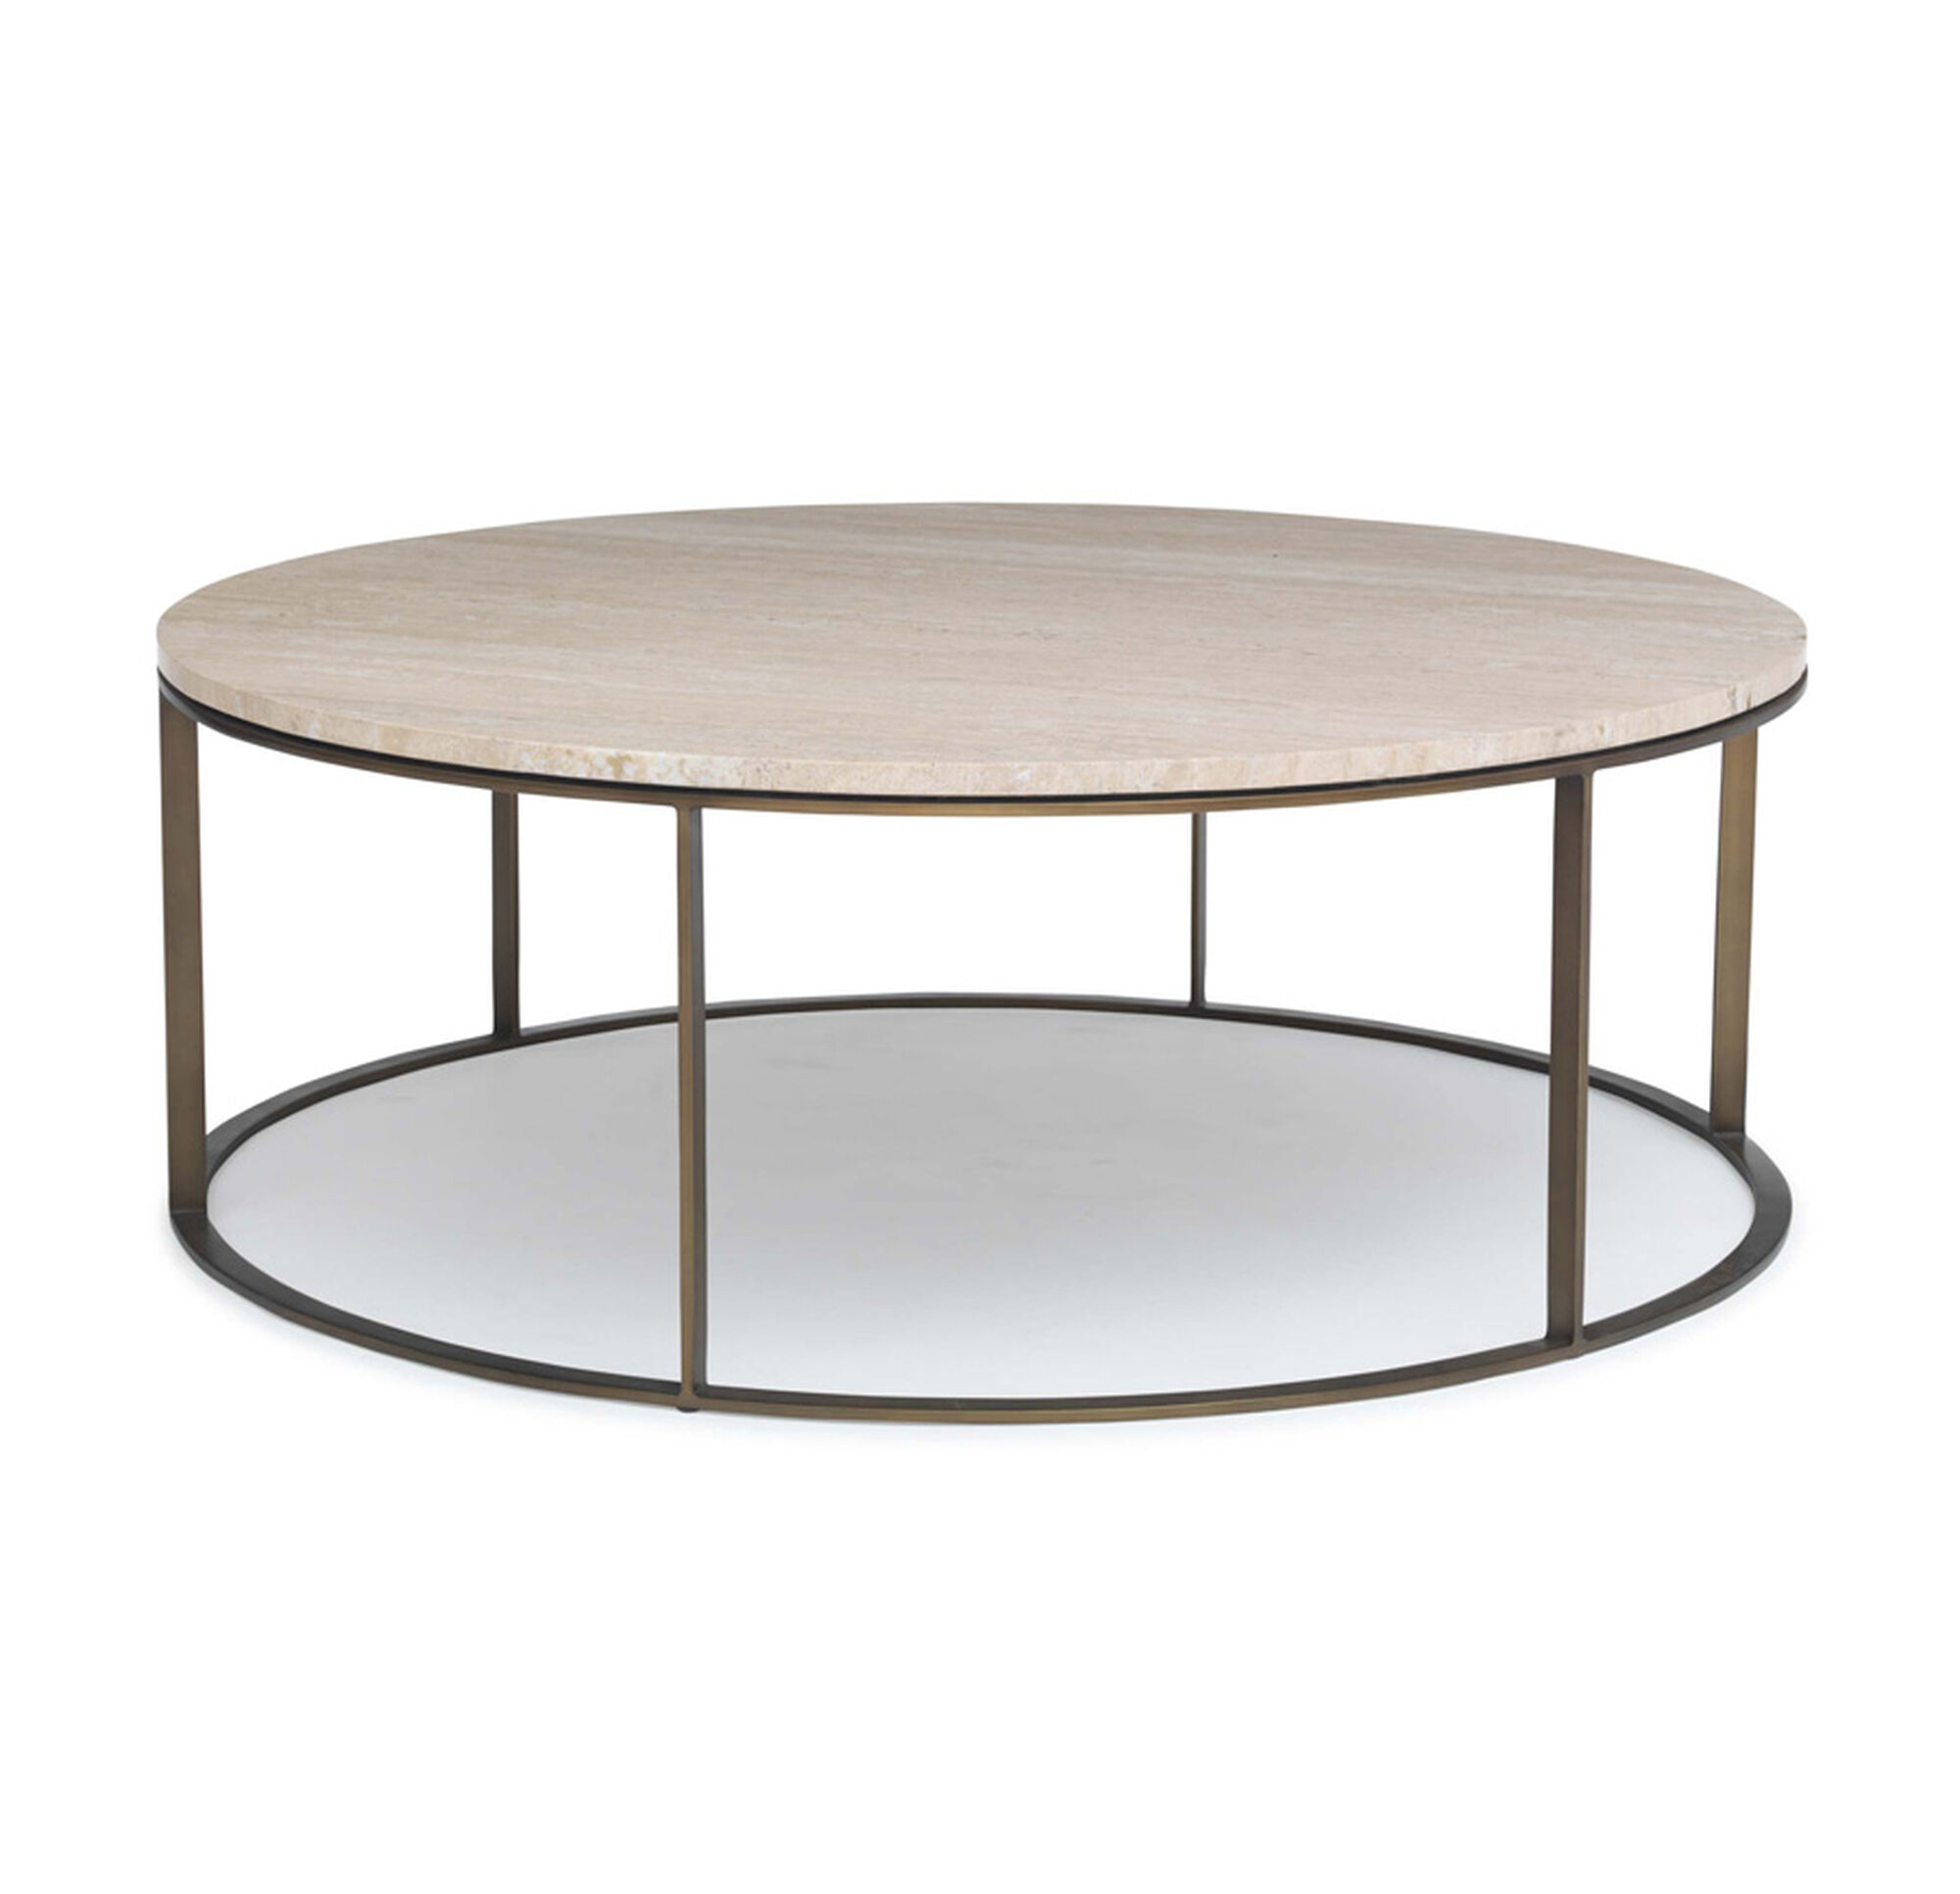 ALLURE ROUND COCKTAIL TABLE - Round cocktail table with stools